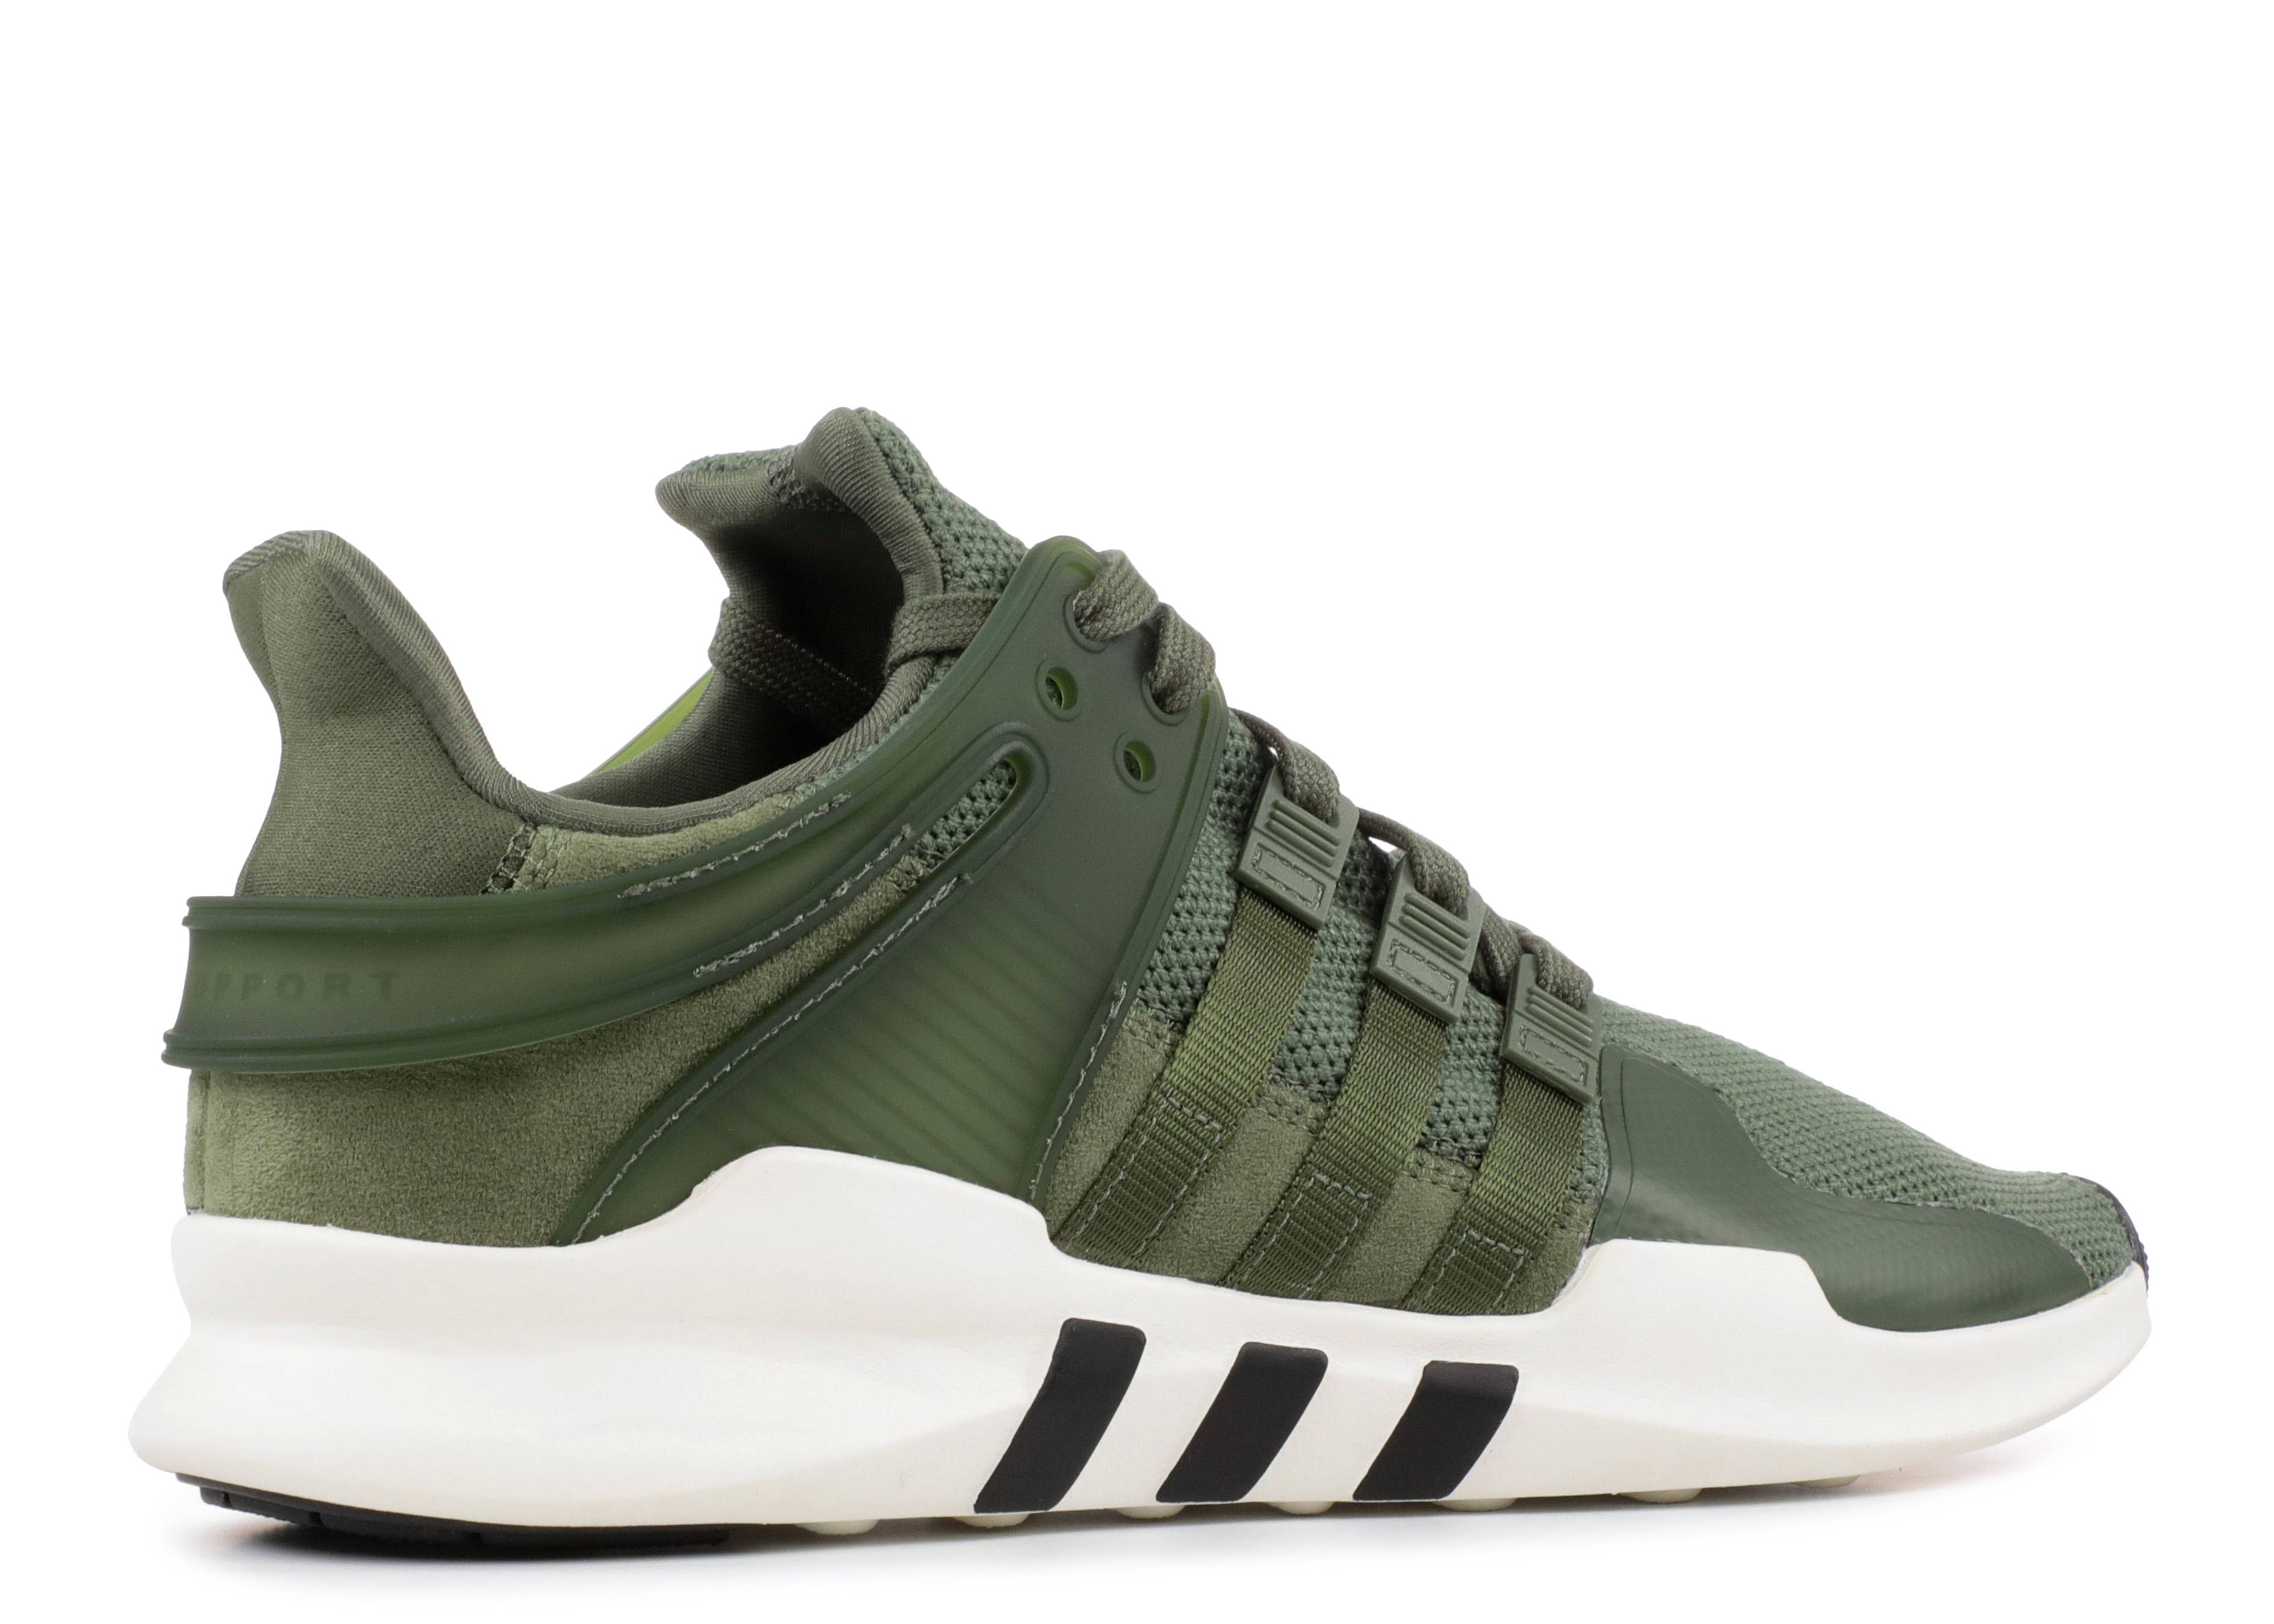 separation shoes 216e7 f0762 purchase adidas eqt support adv olive hvit cp9689 50923 6a81e